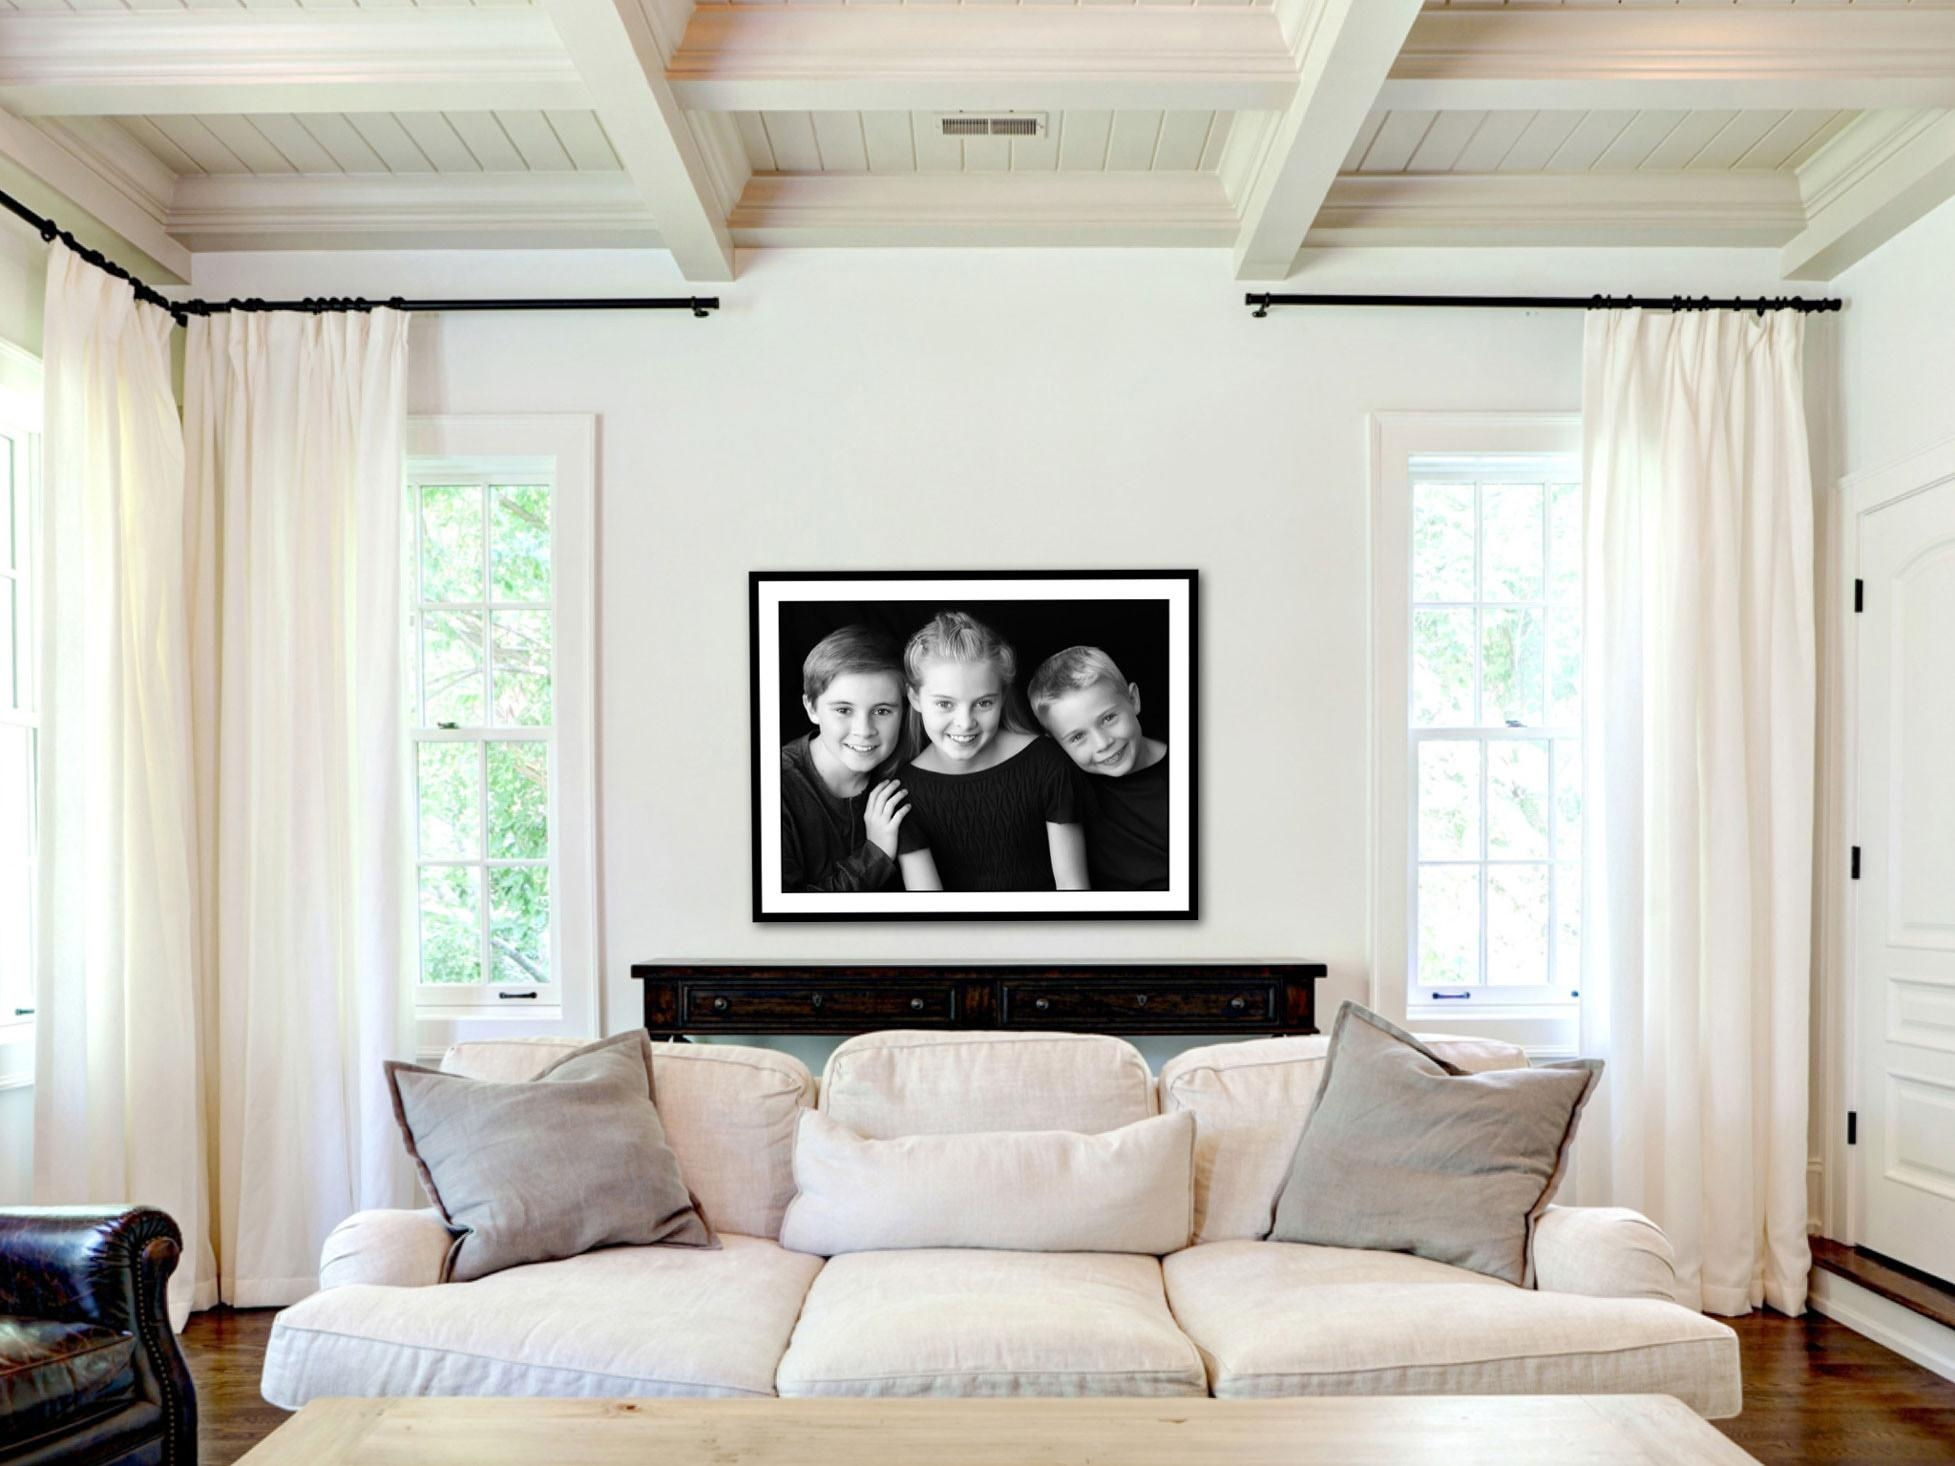 Black And White Photography Wall Art Ideas – With Regard To Photography Wall Art (View 3 of 20)